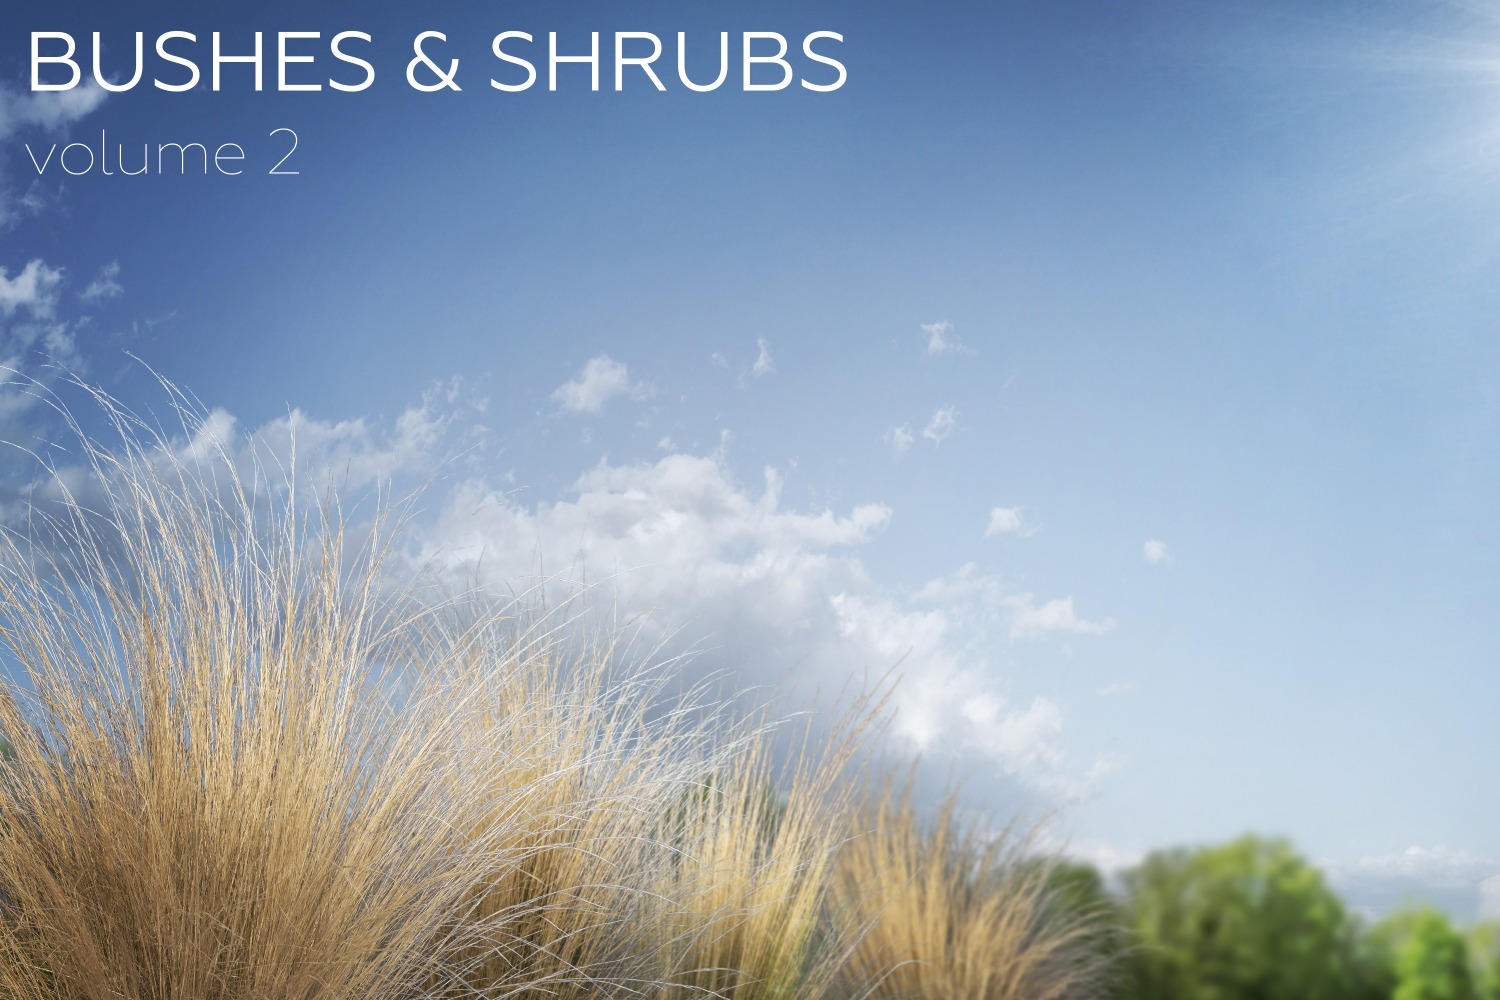 BUSHES & SHRUBS - Volume 2